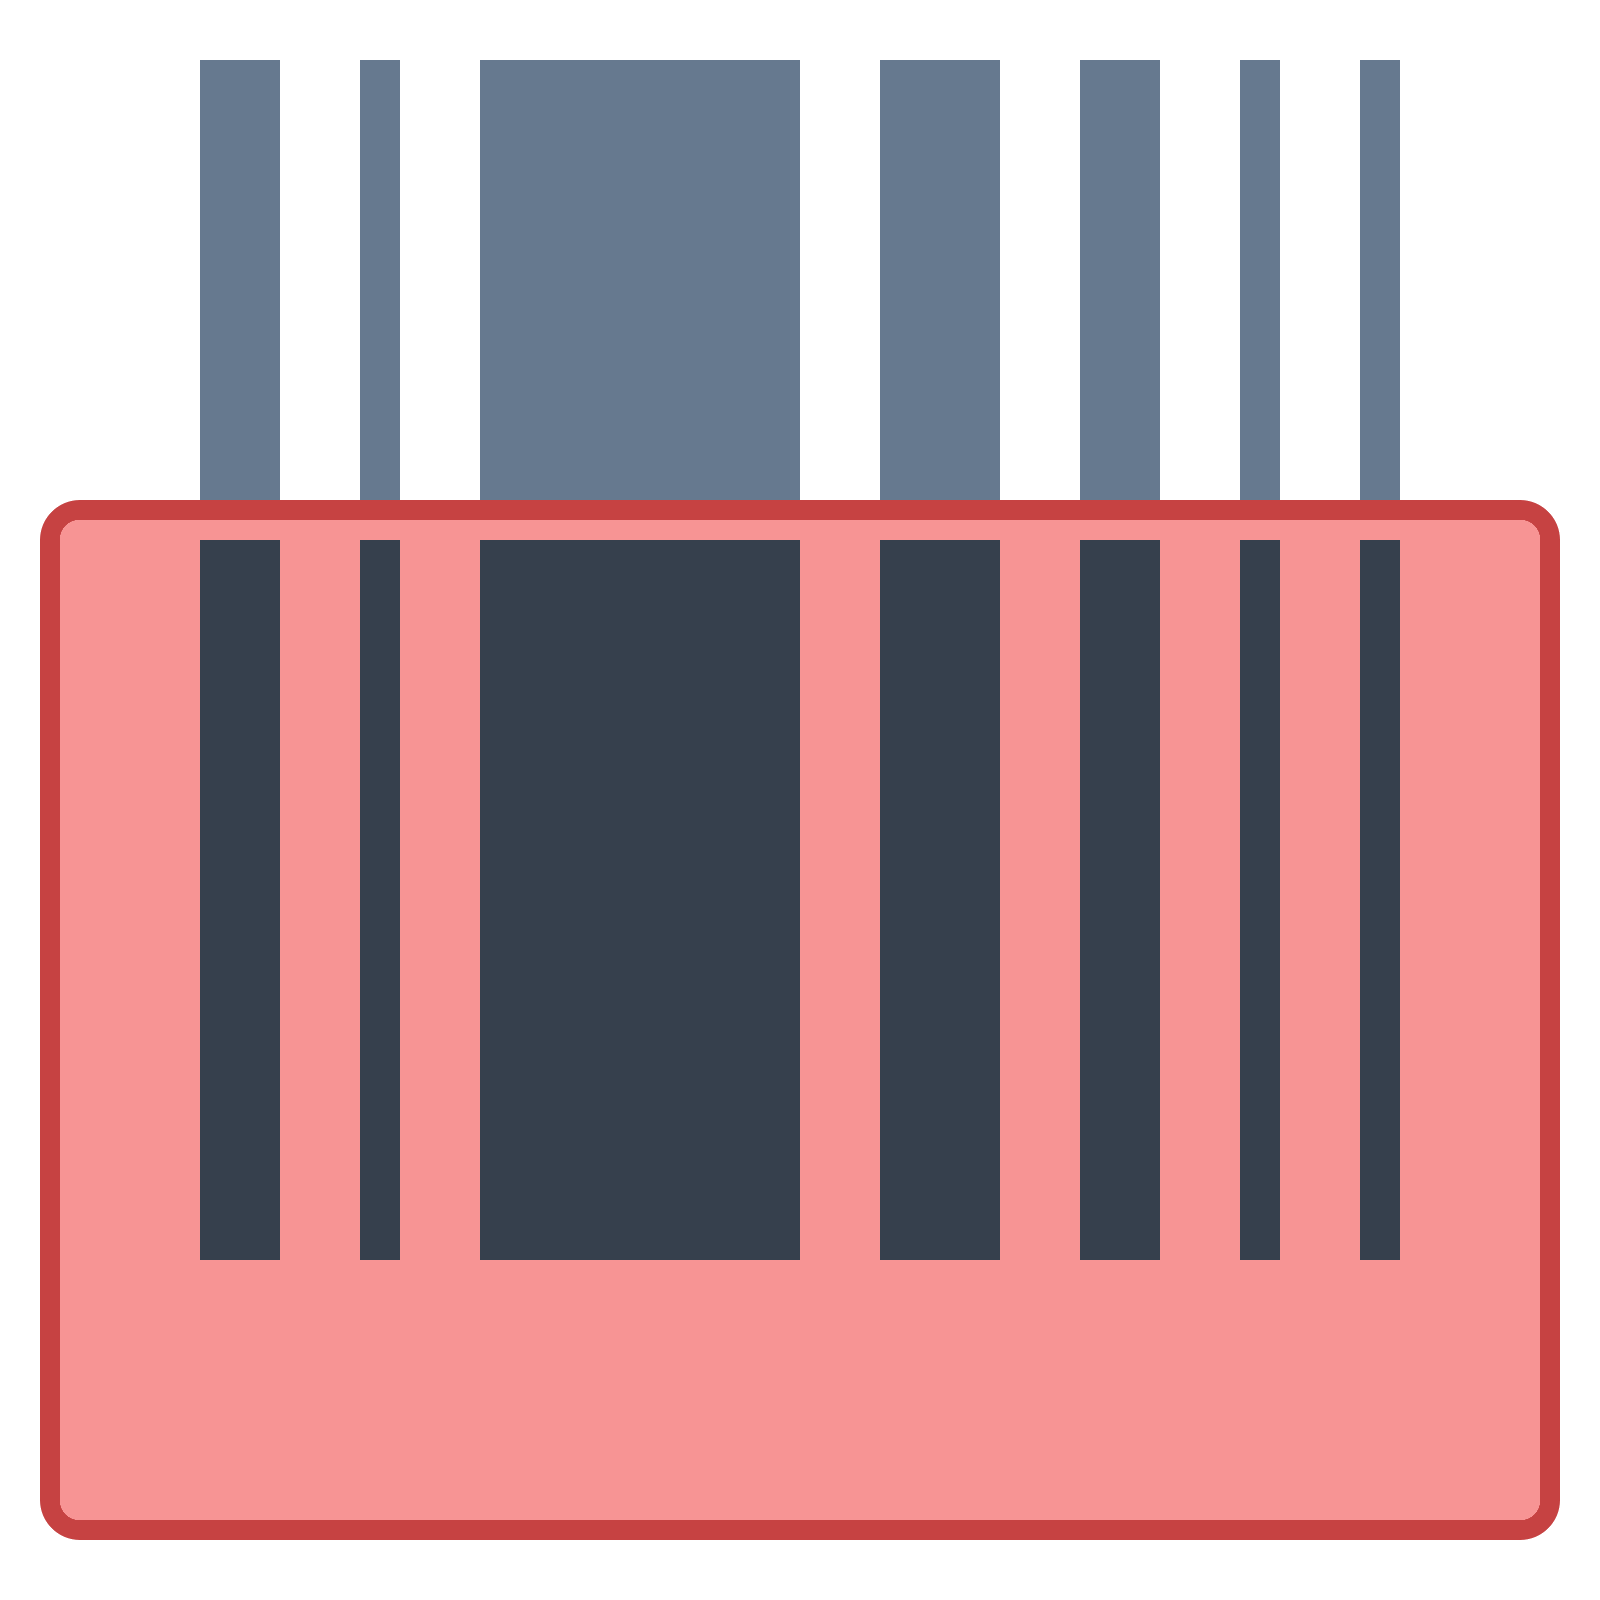 Bar scanner png. Images of barcode with